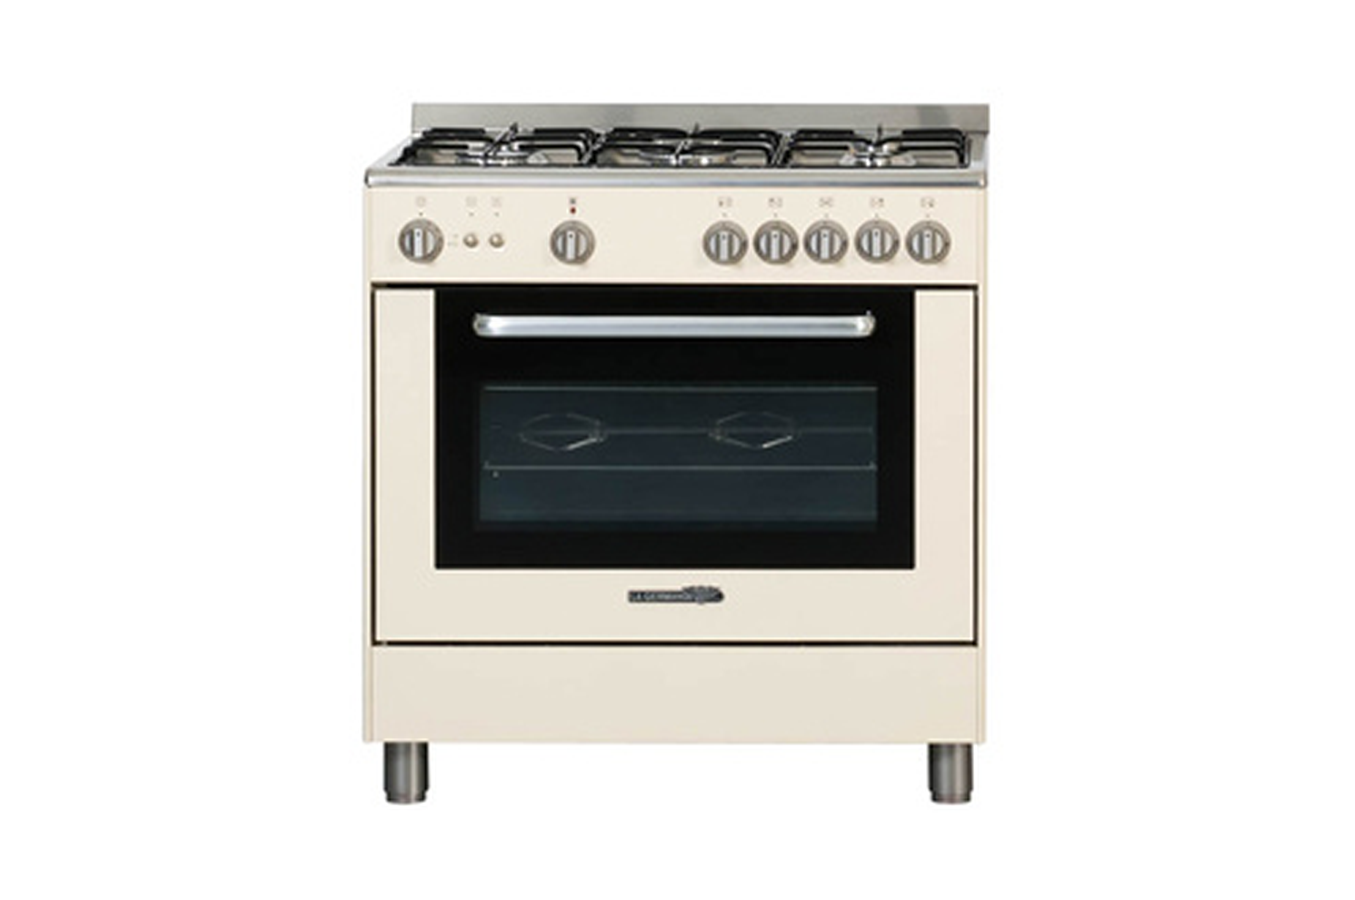 Piano de cuisson la germania t85c20crdt creme 3557642 darty - Piano de cuisson la germania ...